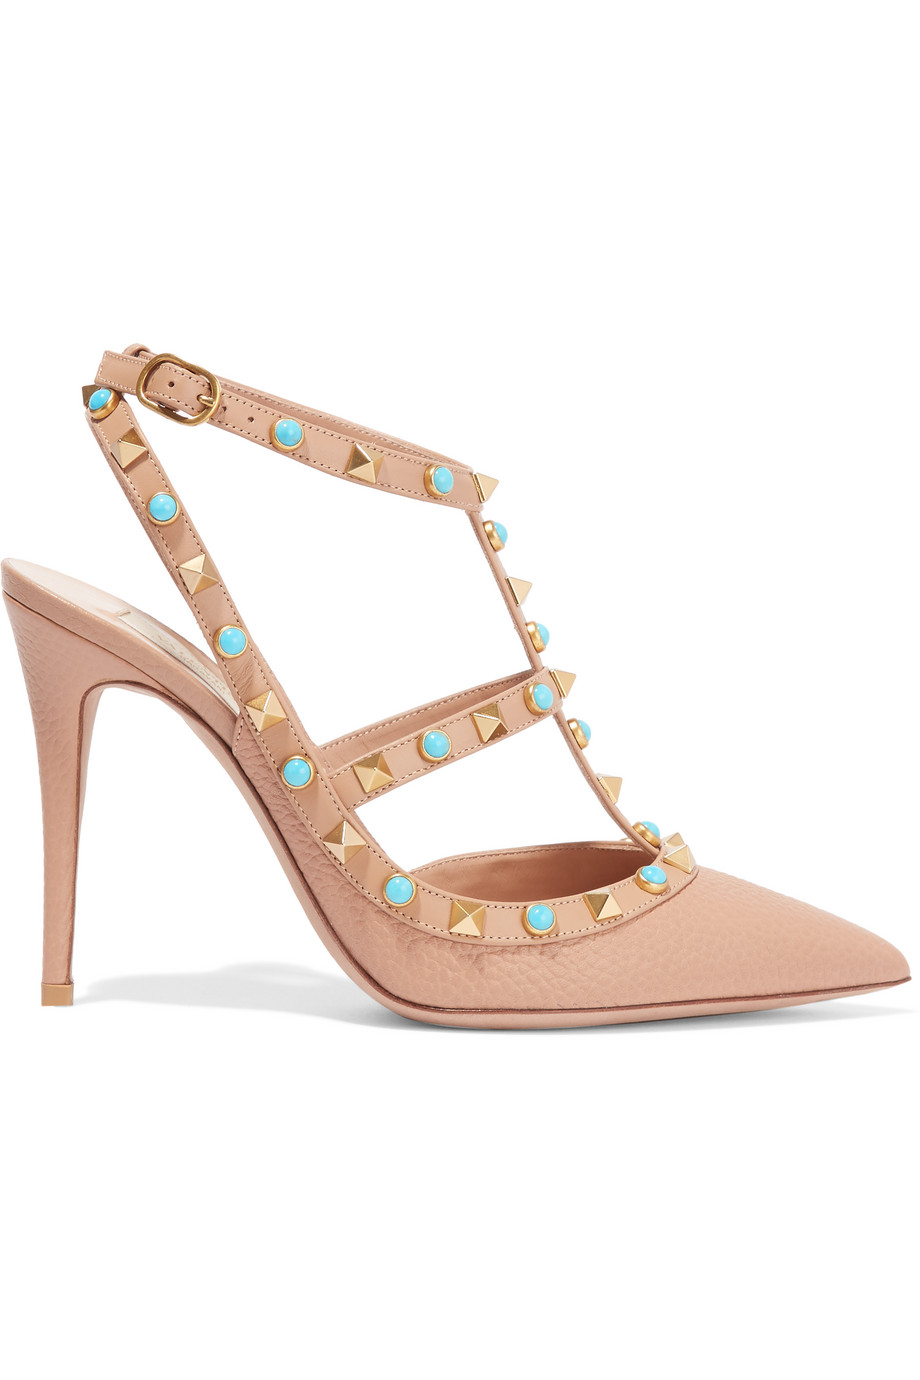 Valentino Rockstud Embellished Leather Pumps, Size: 36